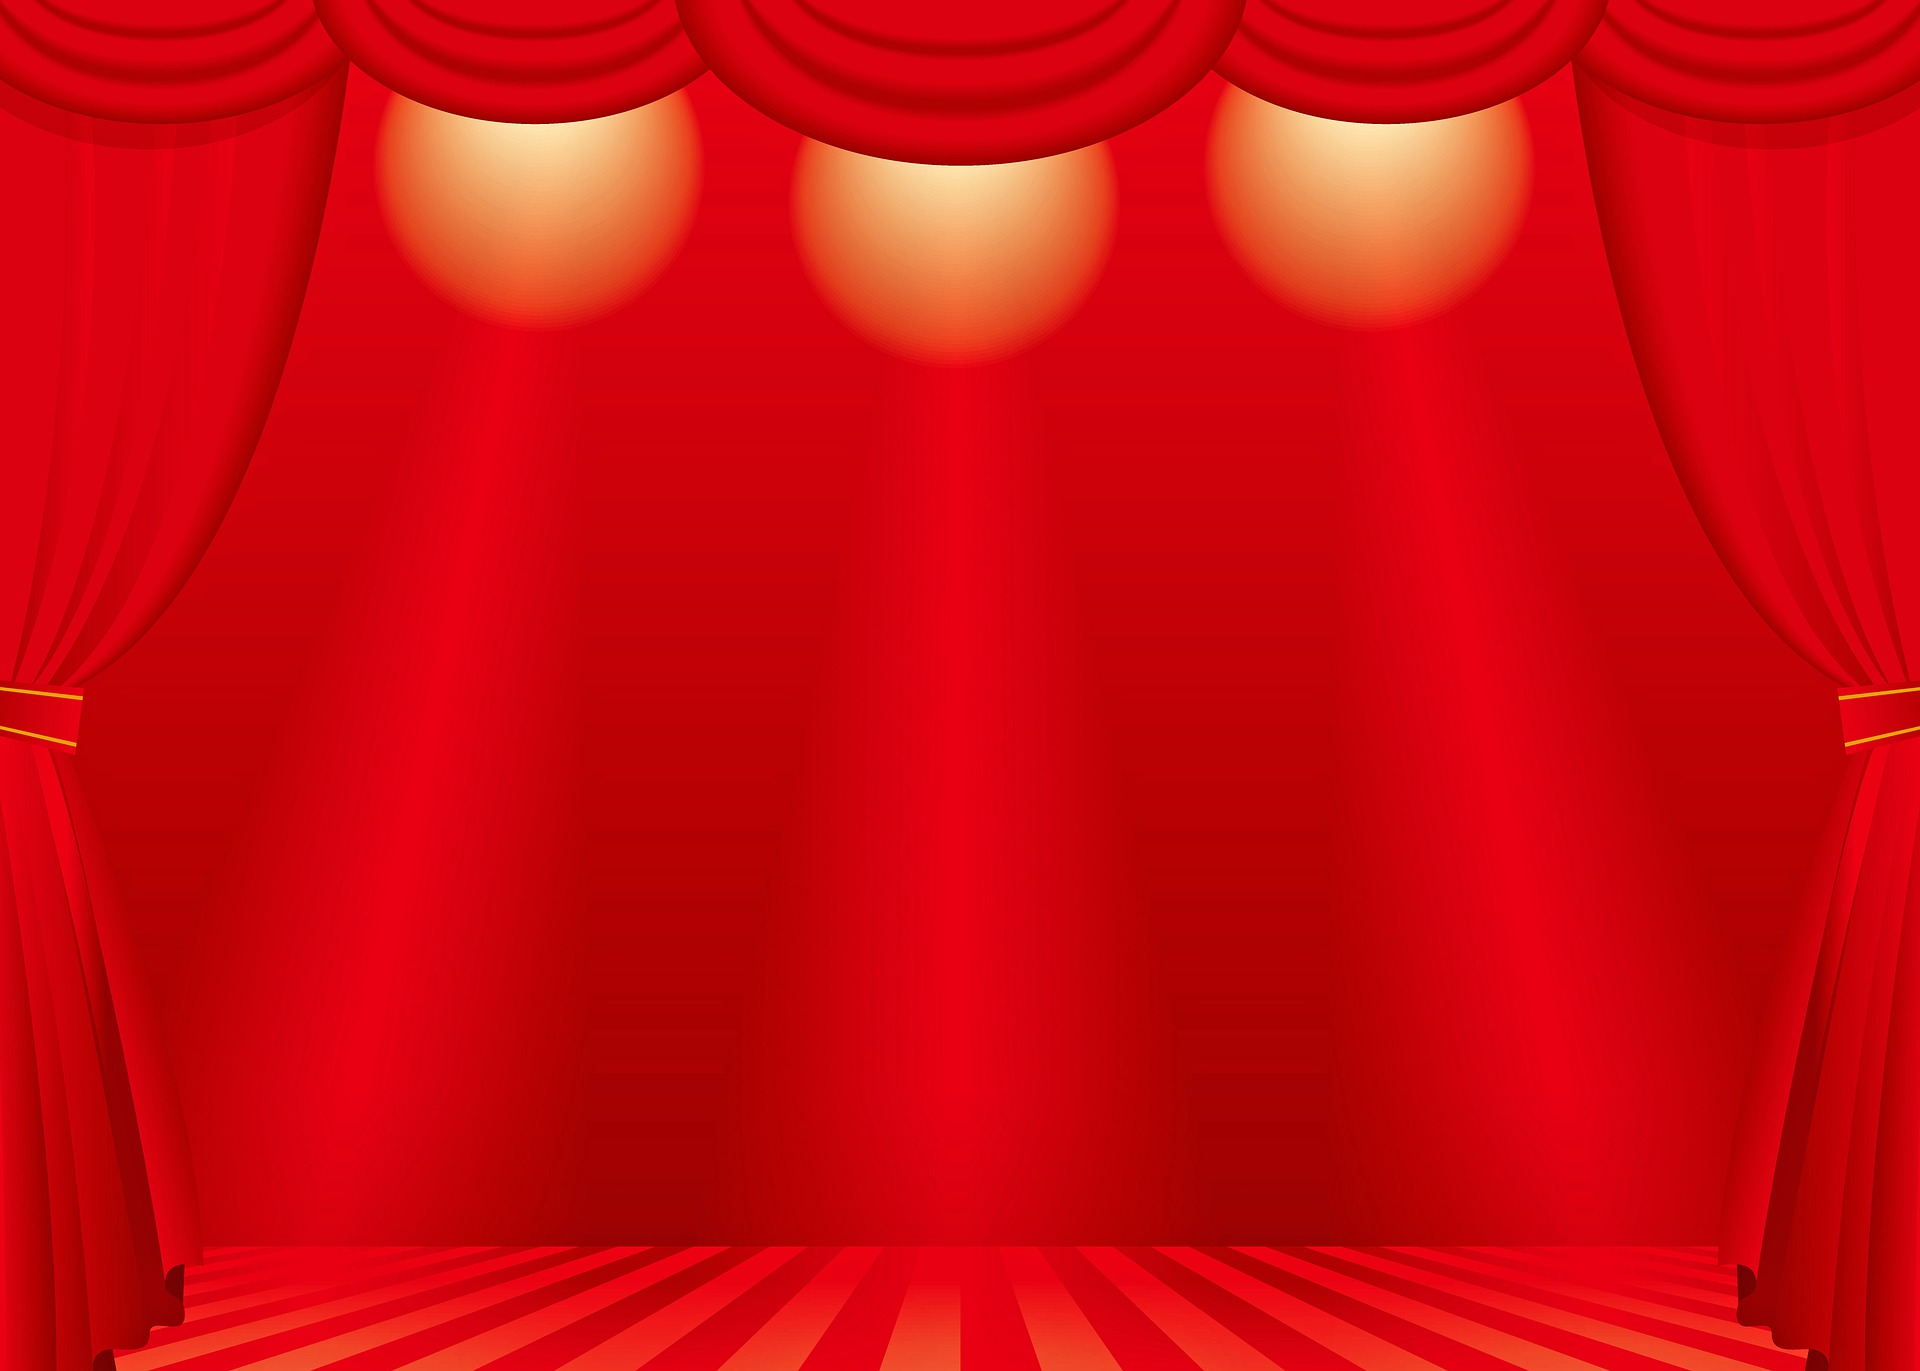 Red stage as metaphor for audience targeting